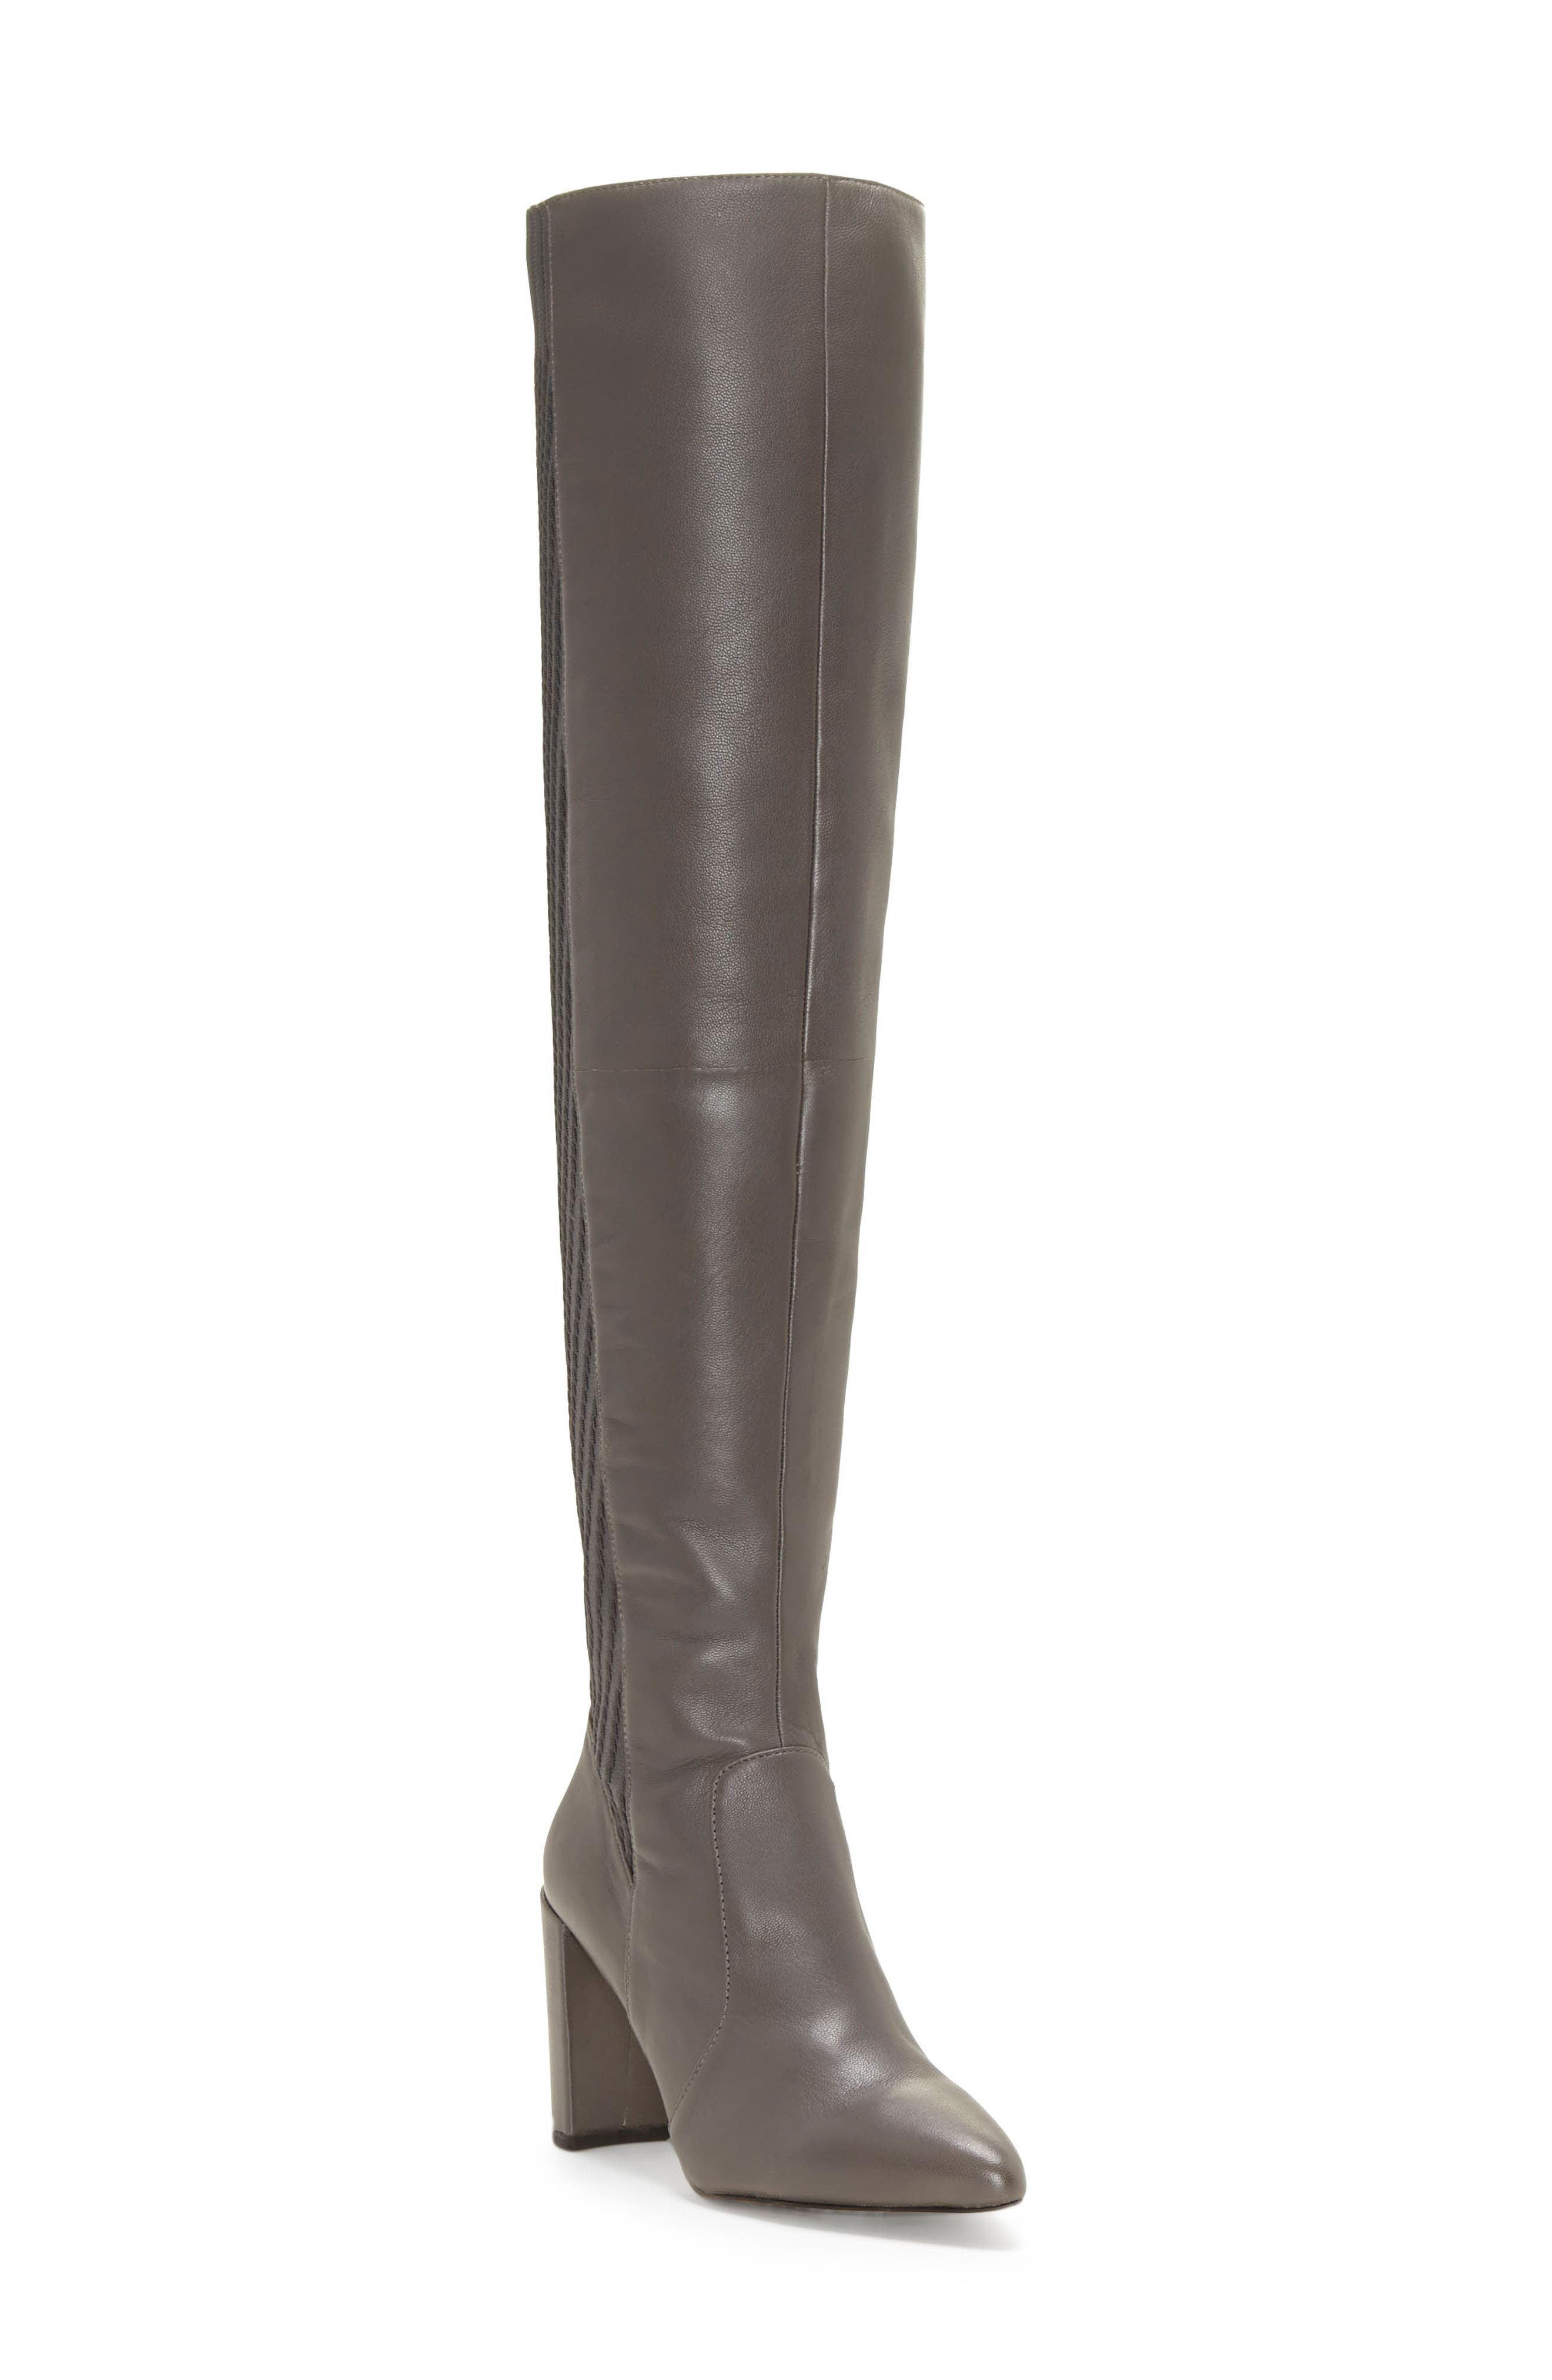 VINCE CAMUTO, Majestie Over the Knee Boot, Main thumbnail 1, color, THUNDER LEATHER